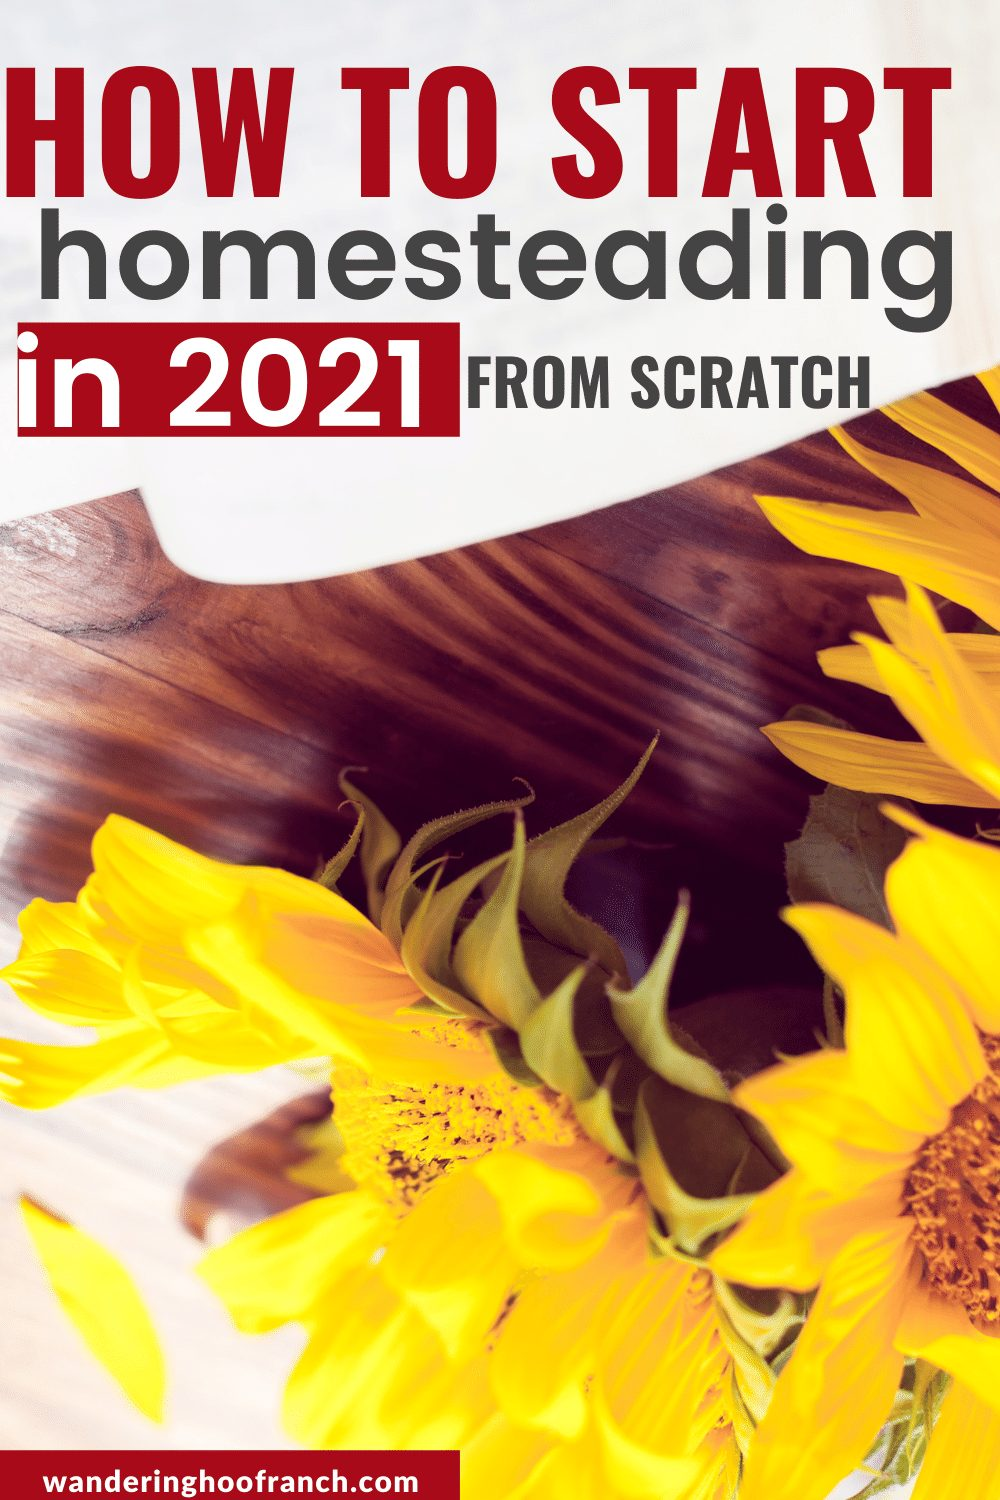 how to start homesteading from scratch in 2021 notebook and sunflowers on desk